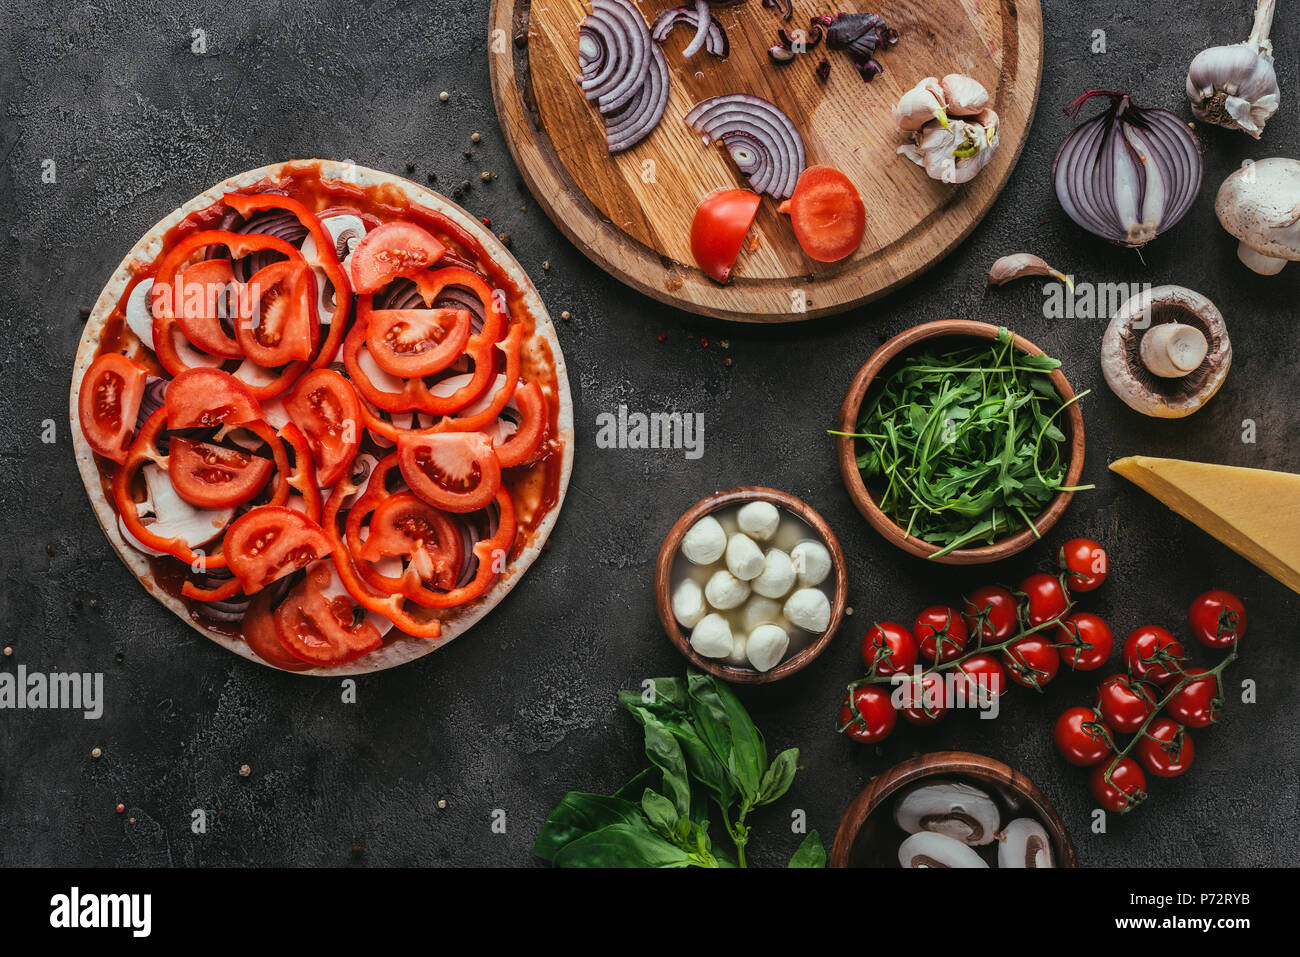 top view of uncooked pizza with different ingredients on concrete table - Stock Image